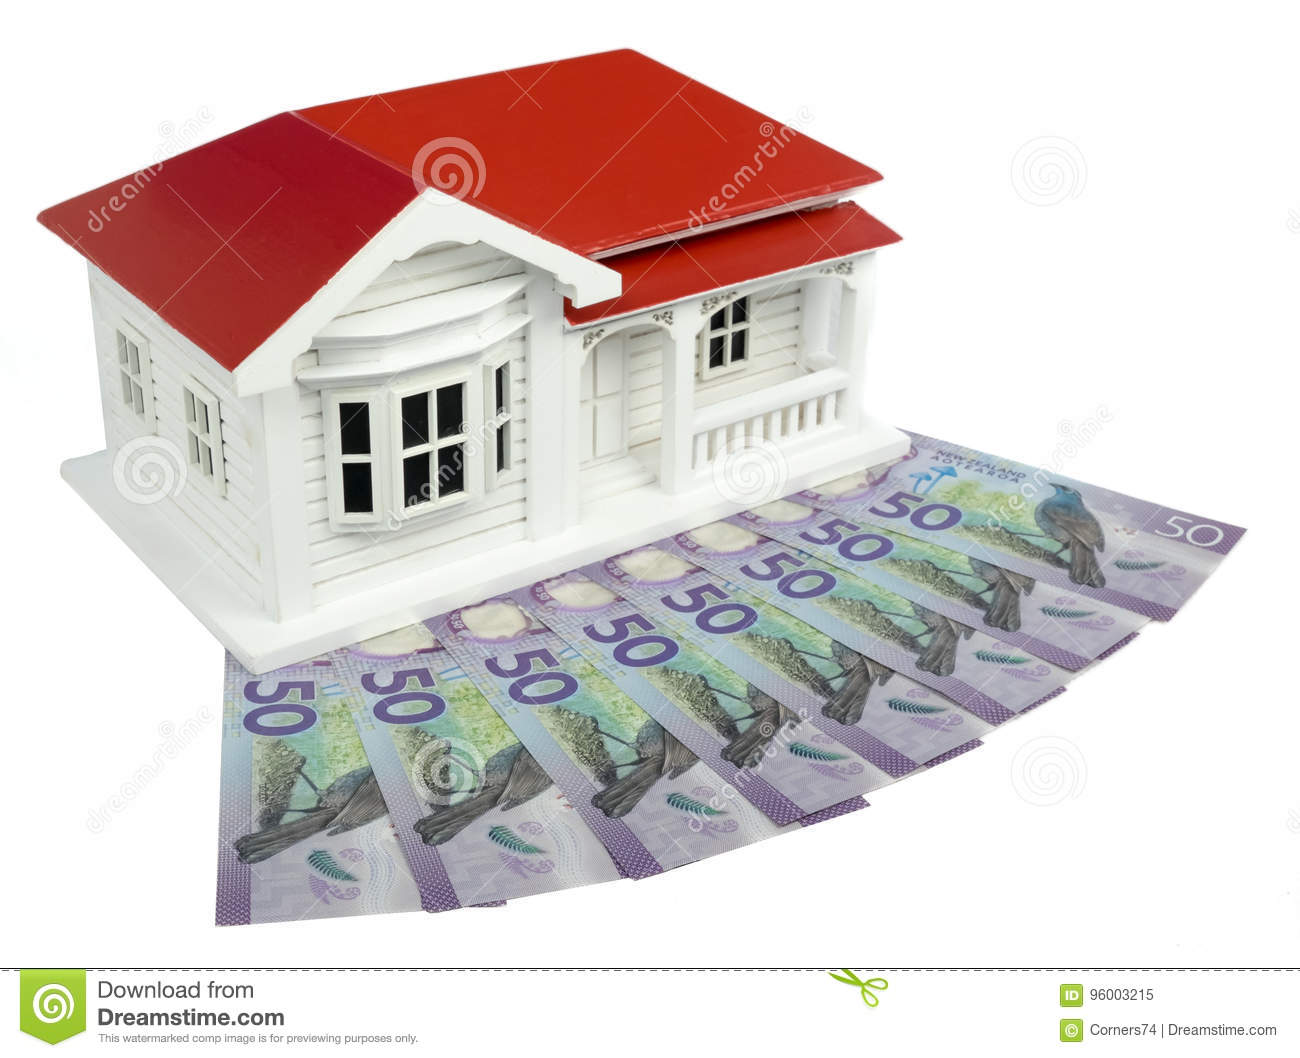 Bungalow Villa House Model With New Zealand NZ Dollars